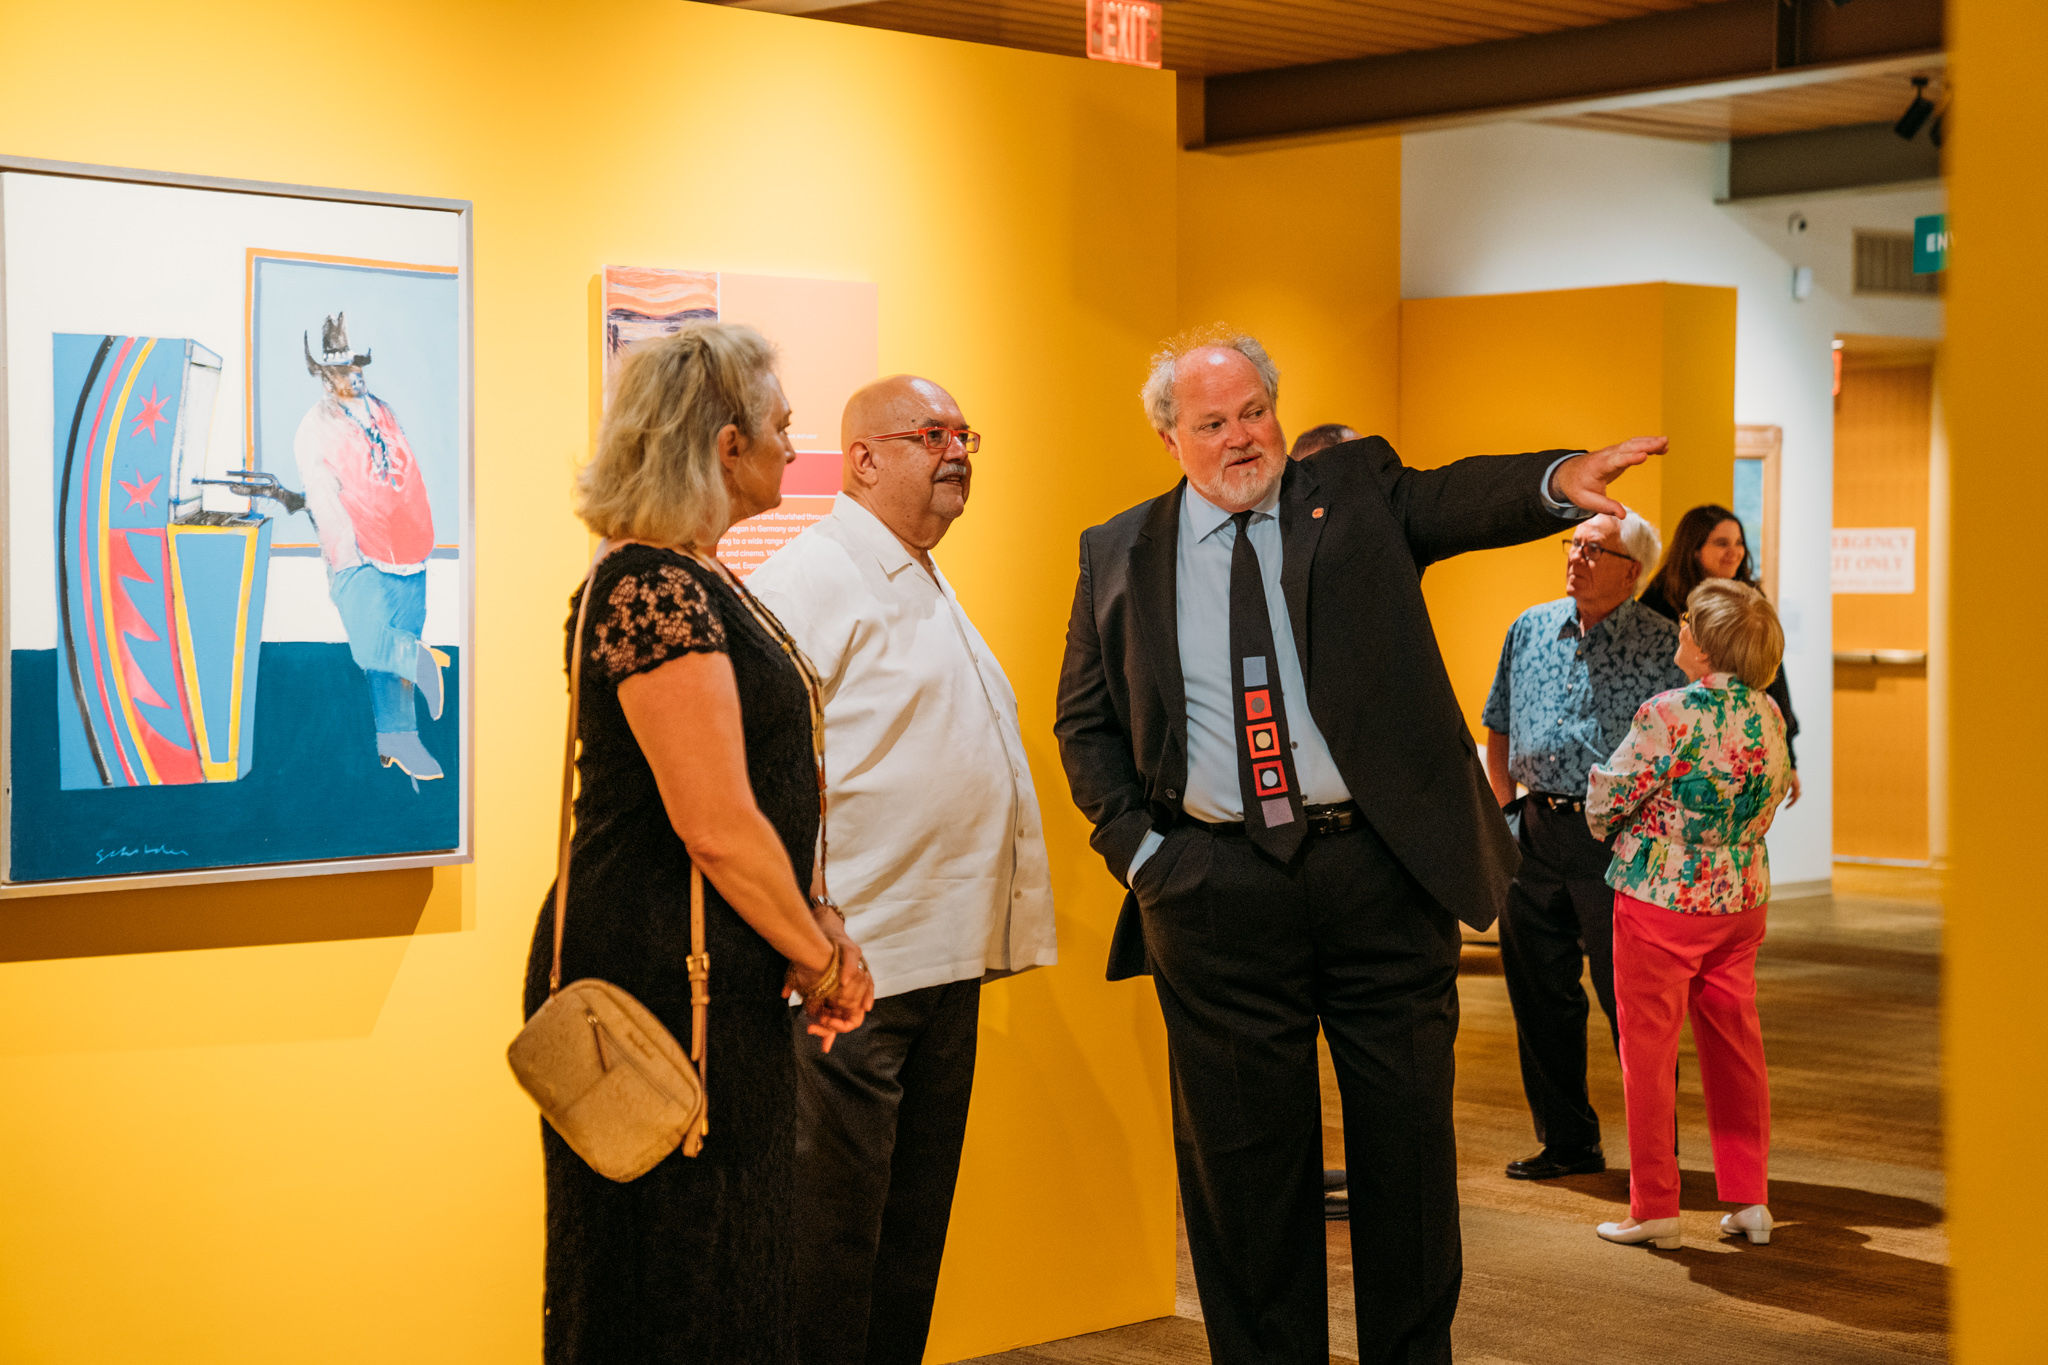 (right) Michael Duchemin, president and CEO of the Briscoe Western Art Museum speaks to attendees during the opening of Into a New West.